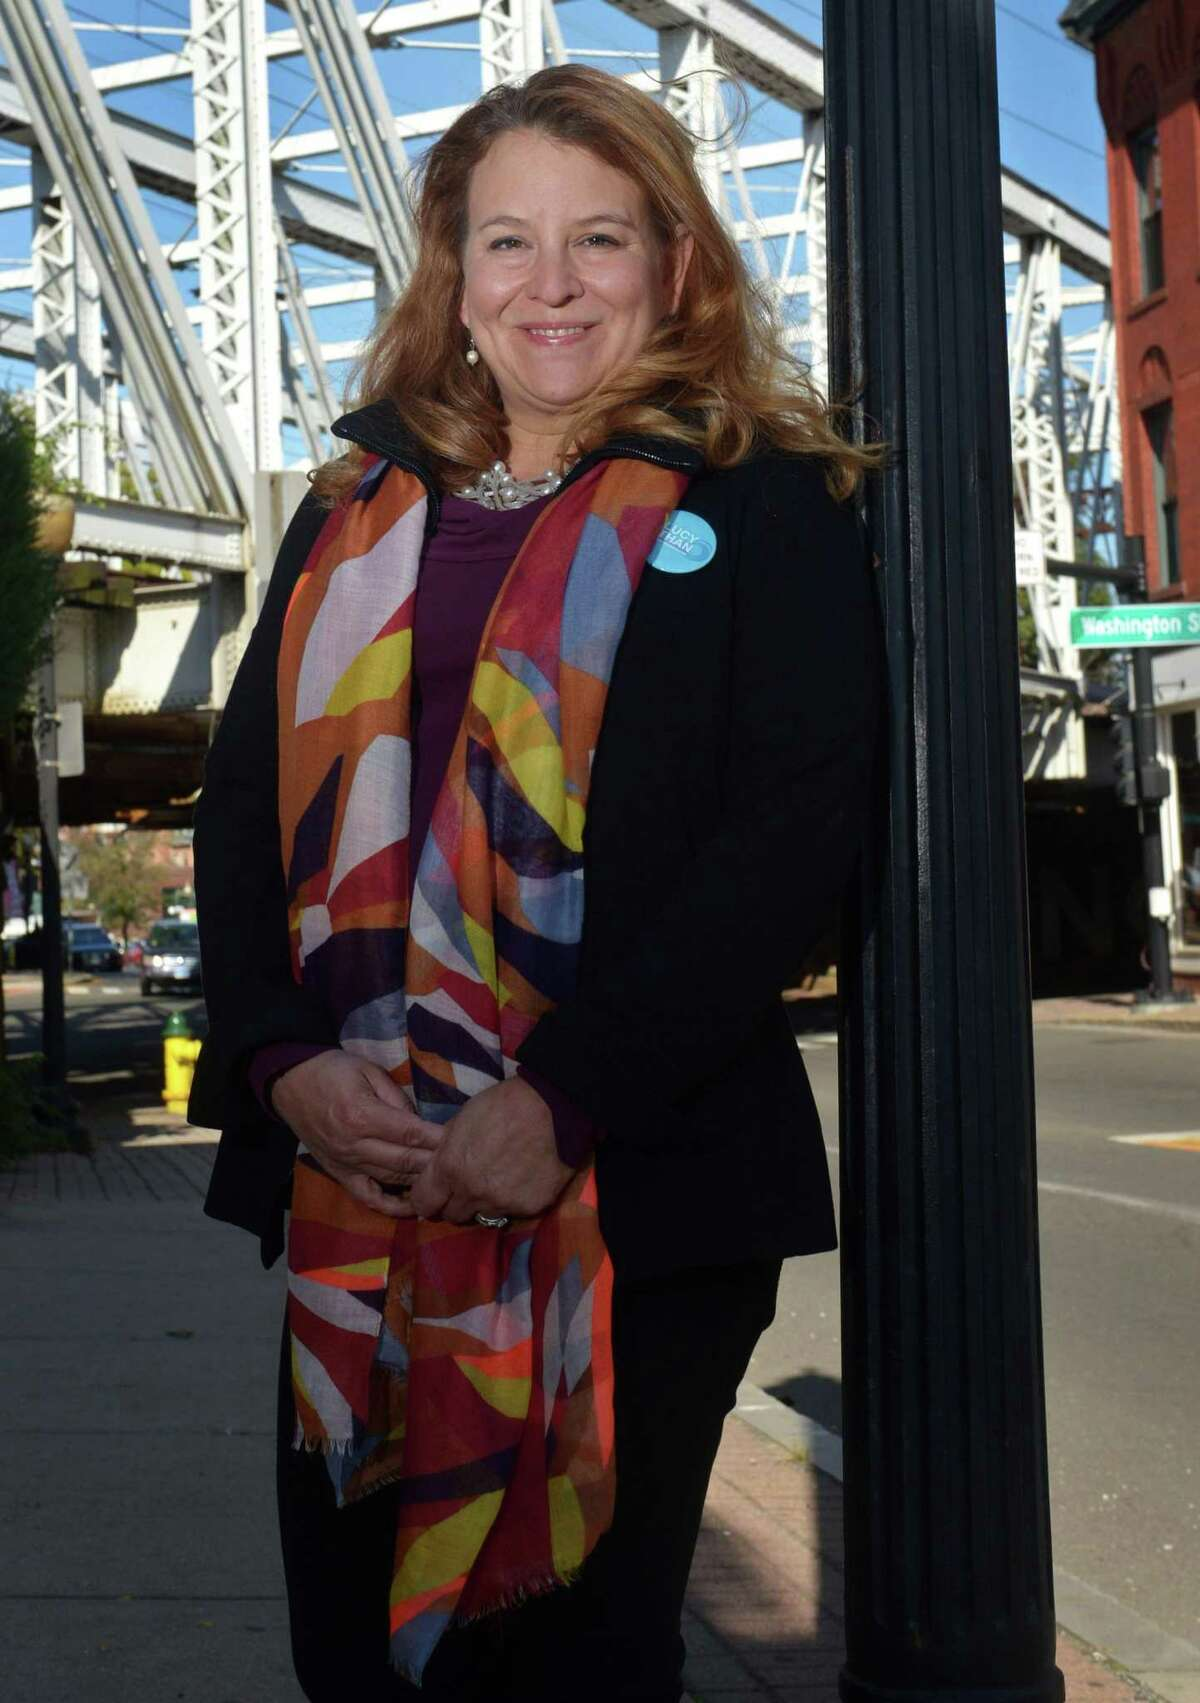 Democrat Lucy Dathan of New Canaan near the Democratic headquarters Wednesday, October 17, 2018, in South Norwalk, Conn. Dathan is banking on her quarter century in the corporate work, will convince voters to elect her to represent the 142nd District in the Connecticut House of Representatives. The district covers West Norwalk and part of New Canaan.